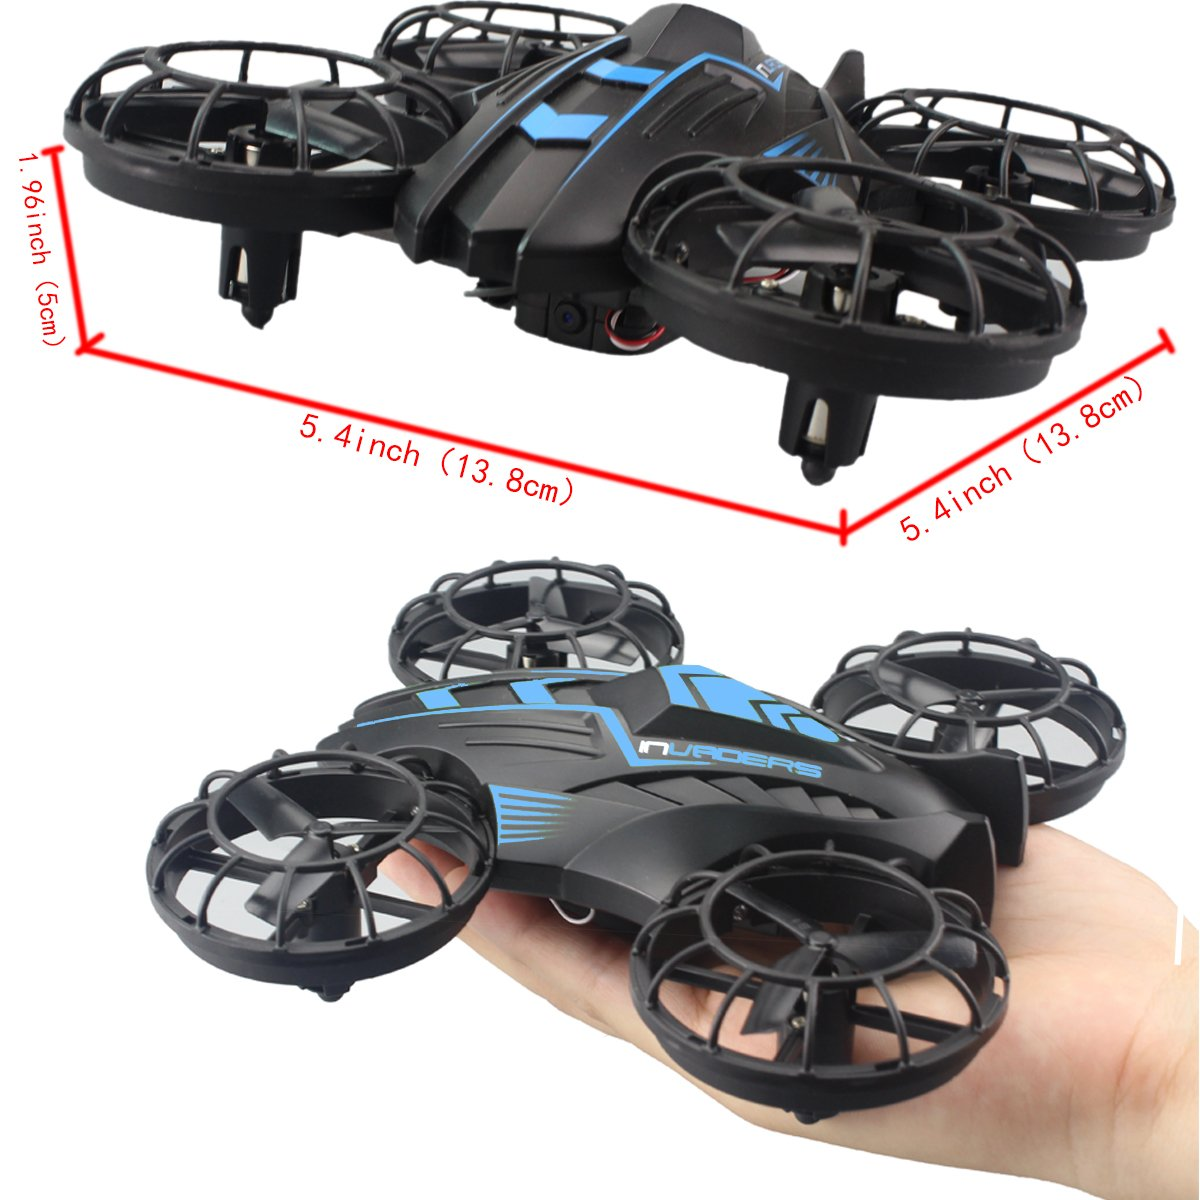 Fistone RC Drone WIFI FPV Quad-rotor 2.4G 6-Axis Gyro Altitude Hold Helicopters Nano Airscrew Portable Aircraft 3D Flip Remote Control UFO Exploration multirotors Electronic Hobby Toys(Blue)